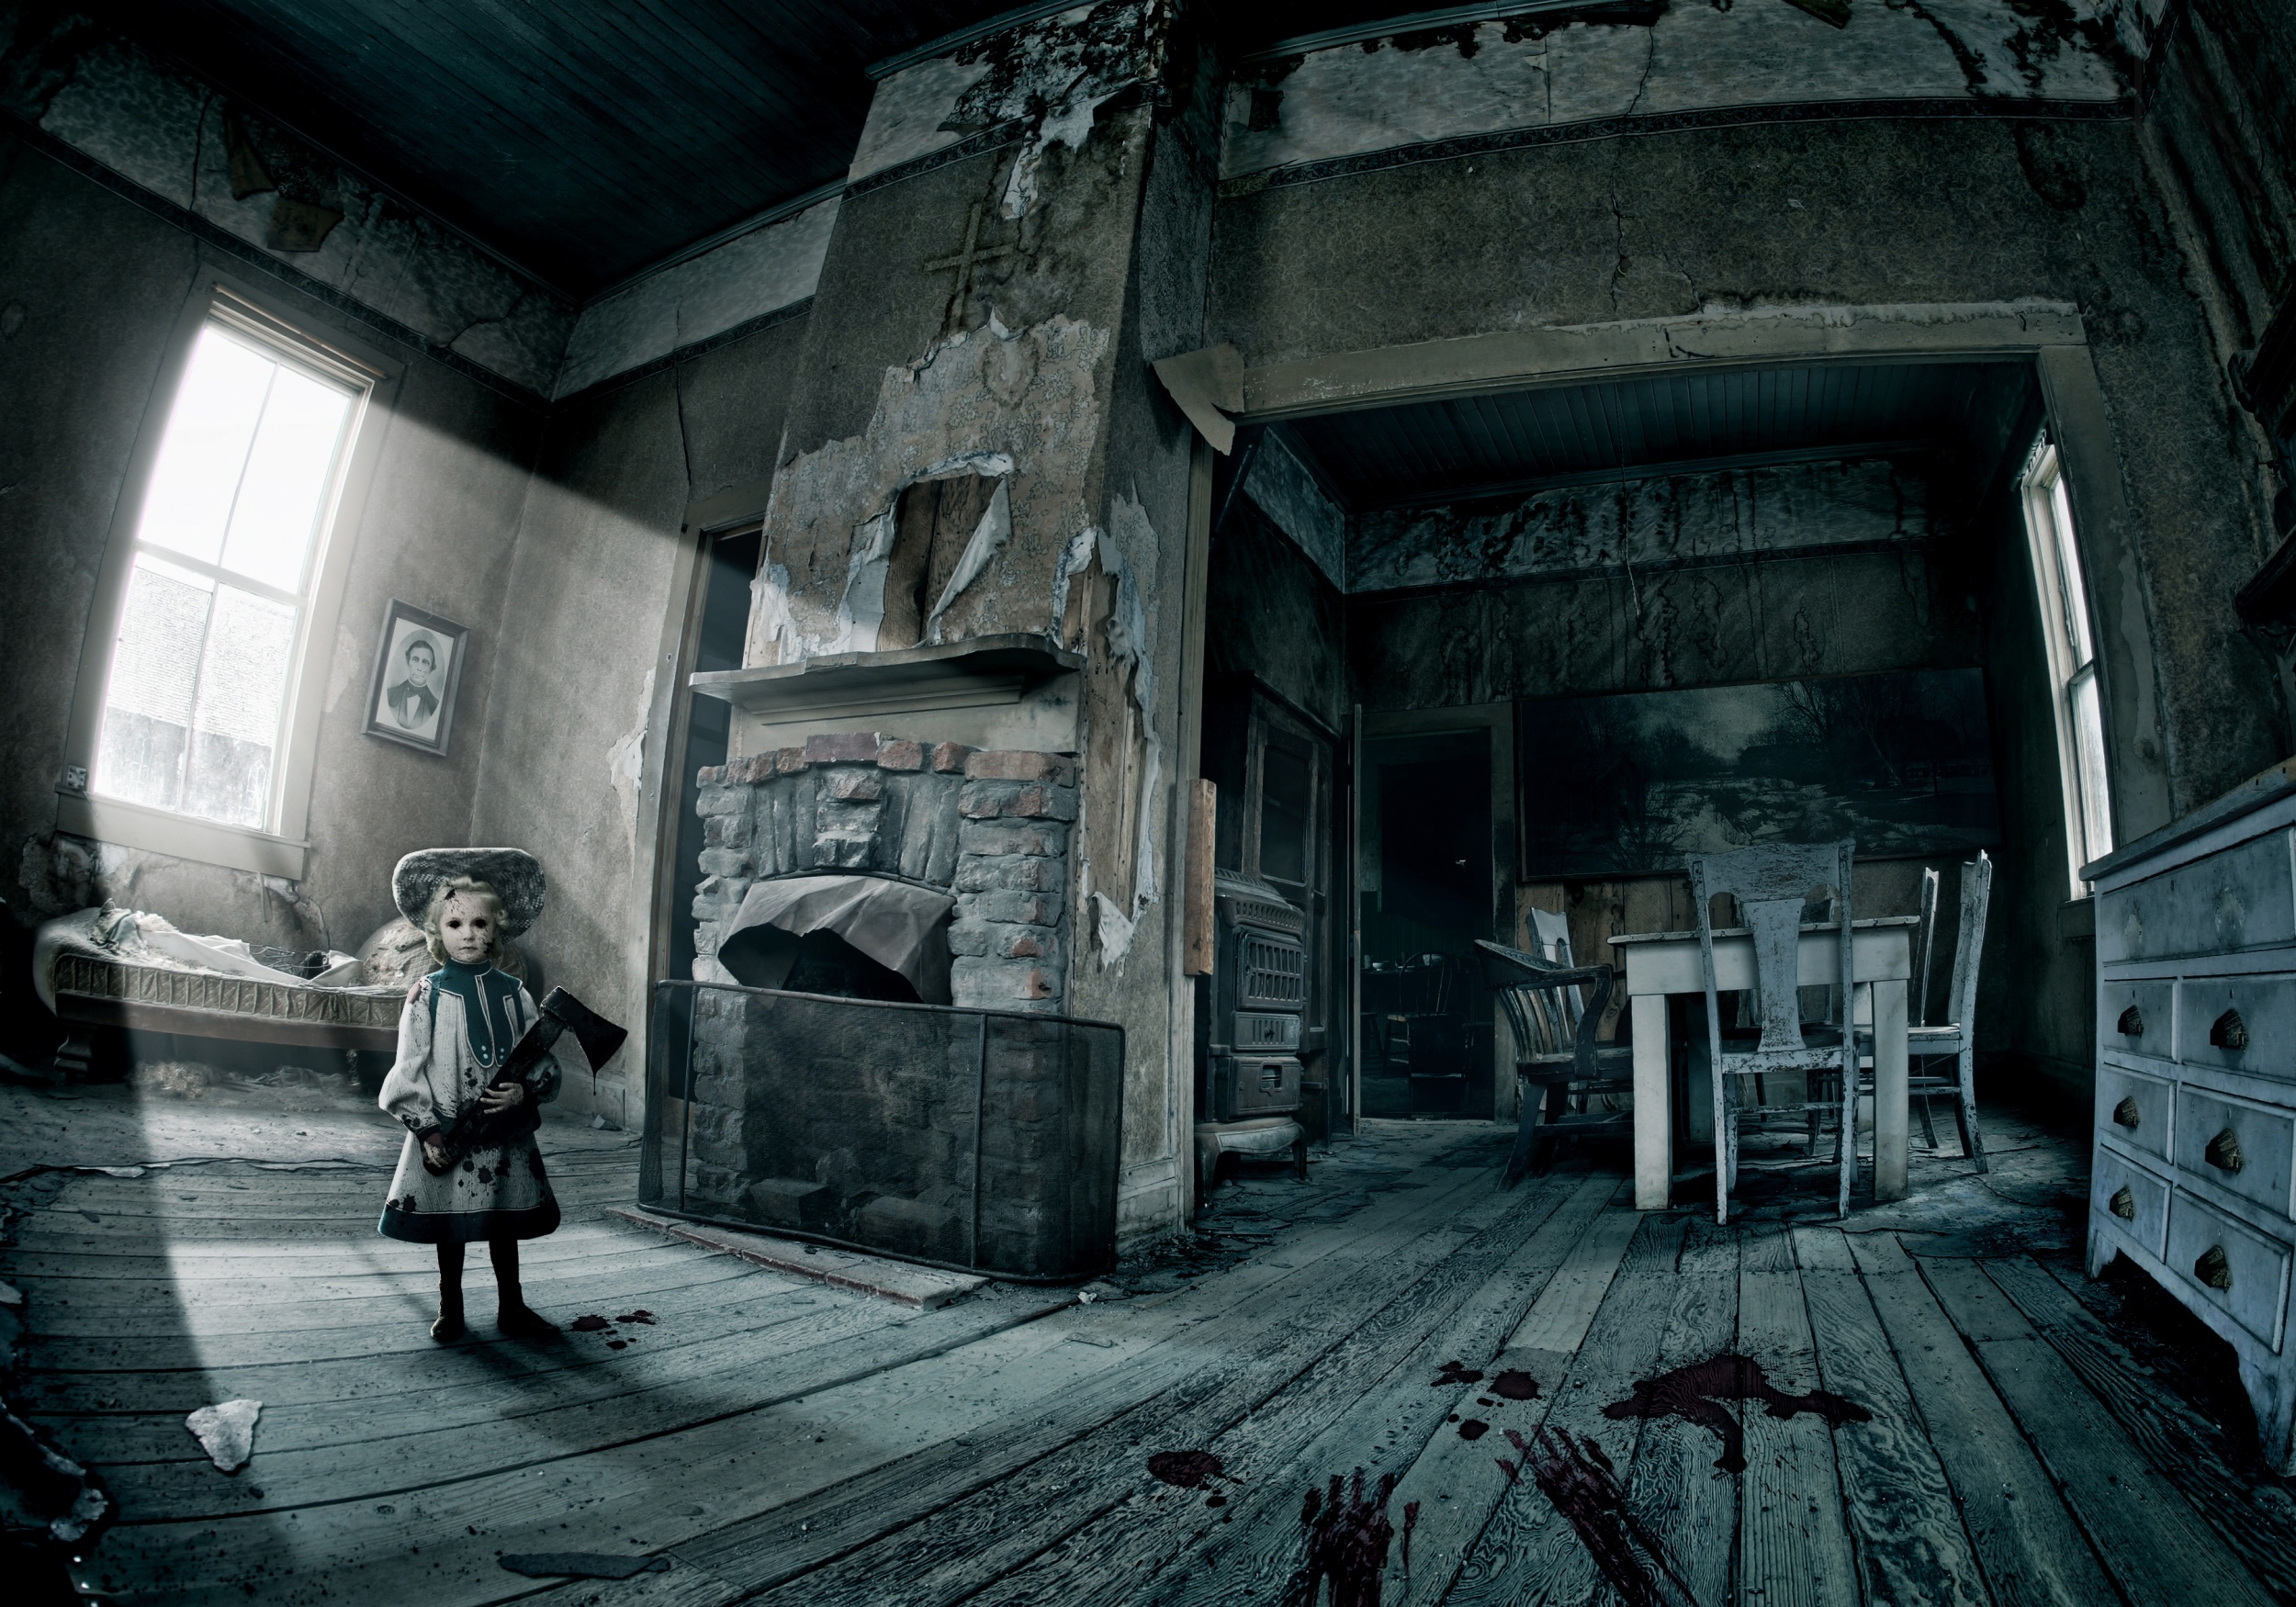 Haunted house hd wallpaper wallpapersafari for House images hd